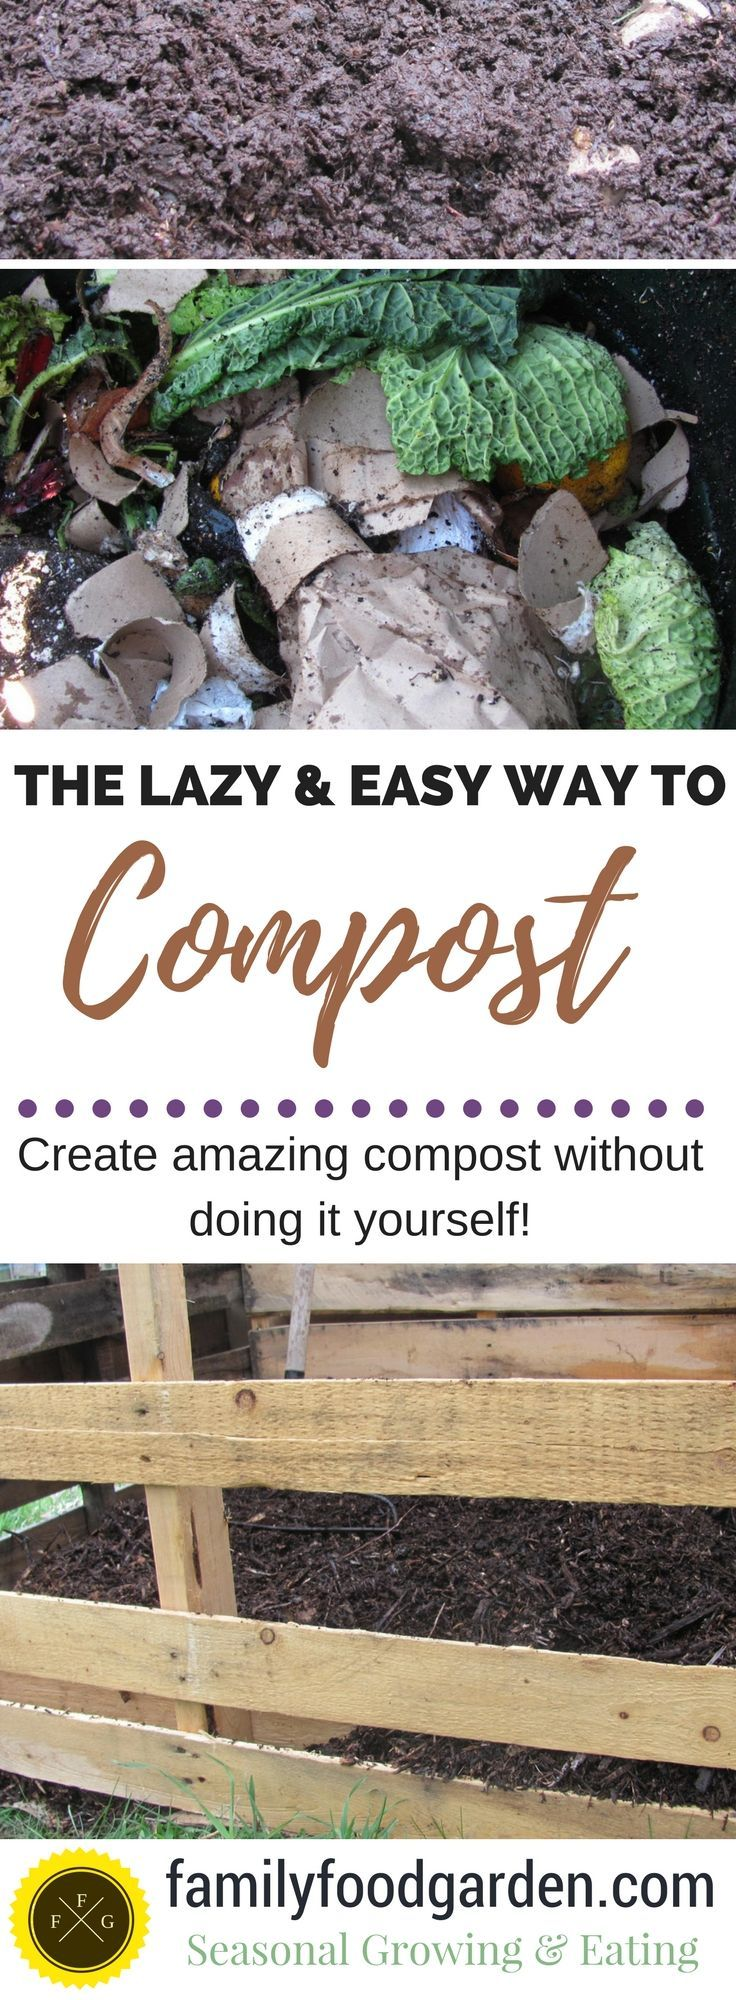 Learn How To Make Amazing Compost Without Doing It Yourself